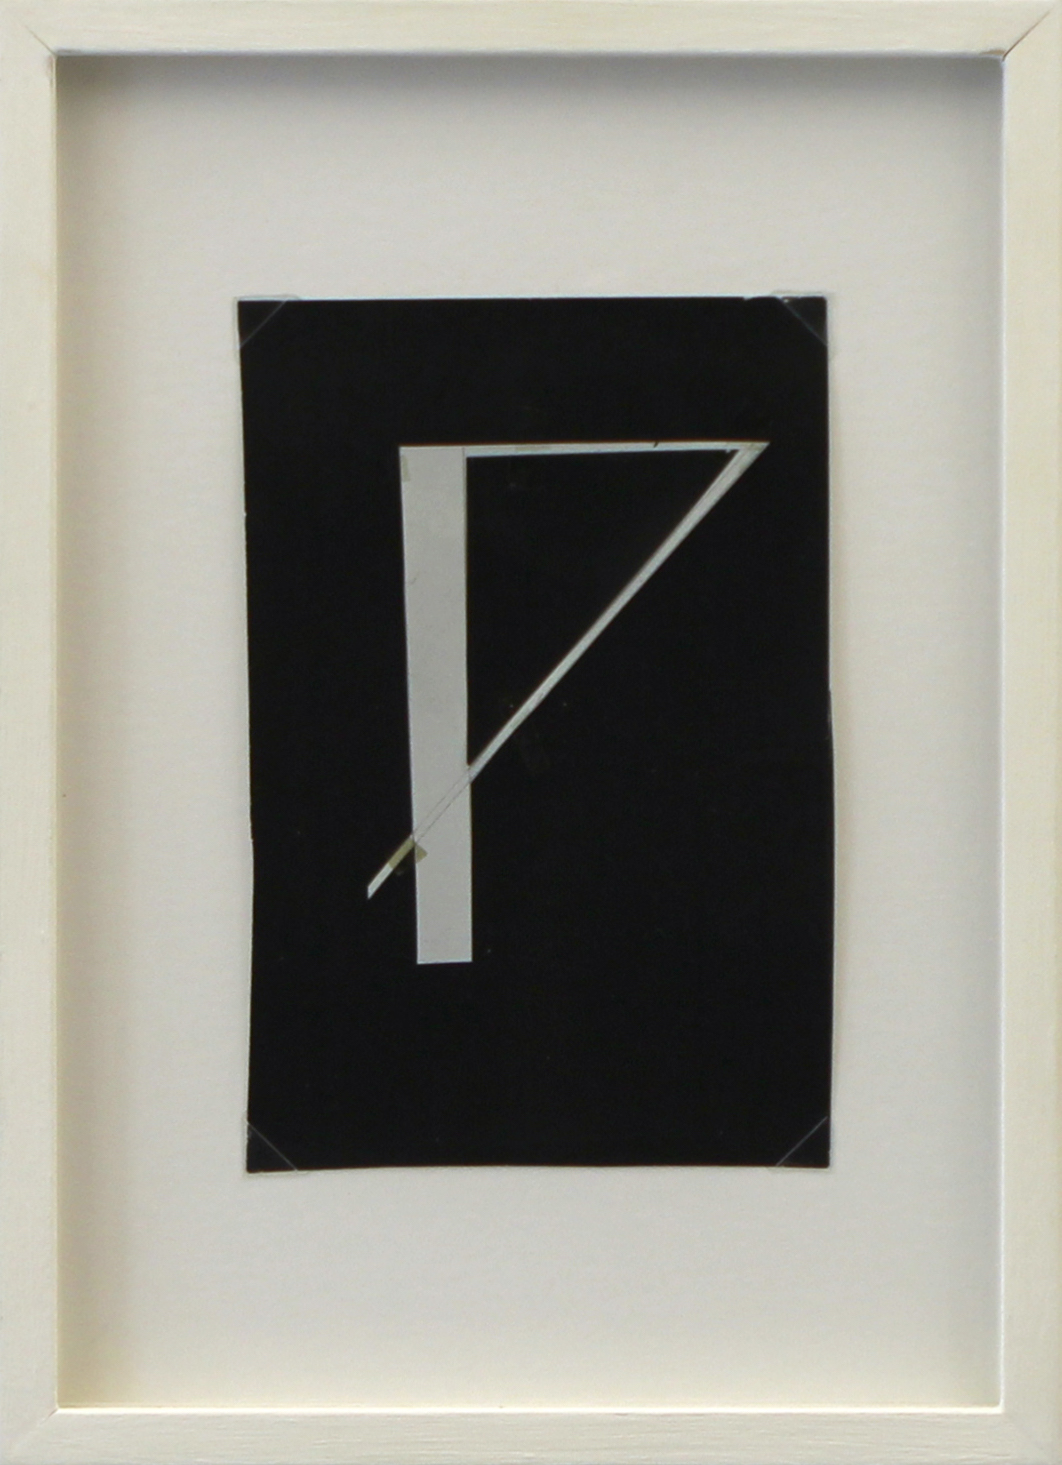 Glagolitic letter N, paper collage, 25 x 18 x 2 cm, 1970